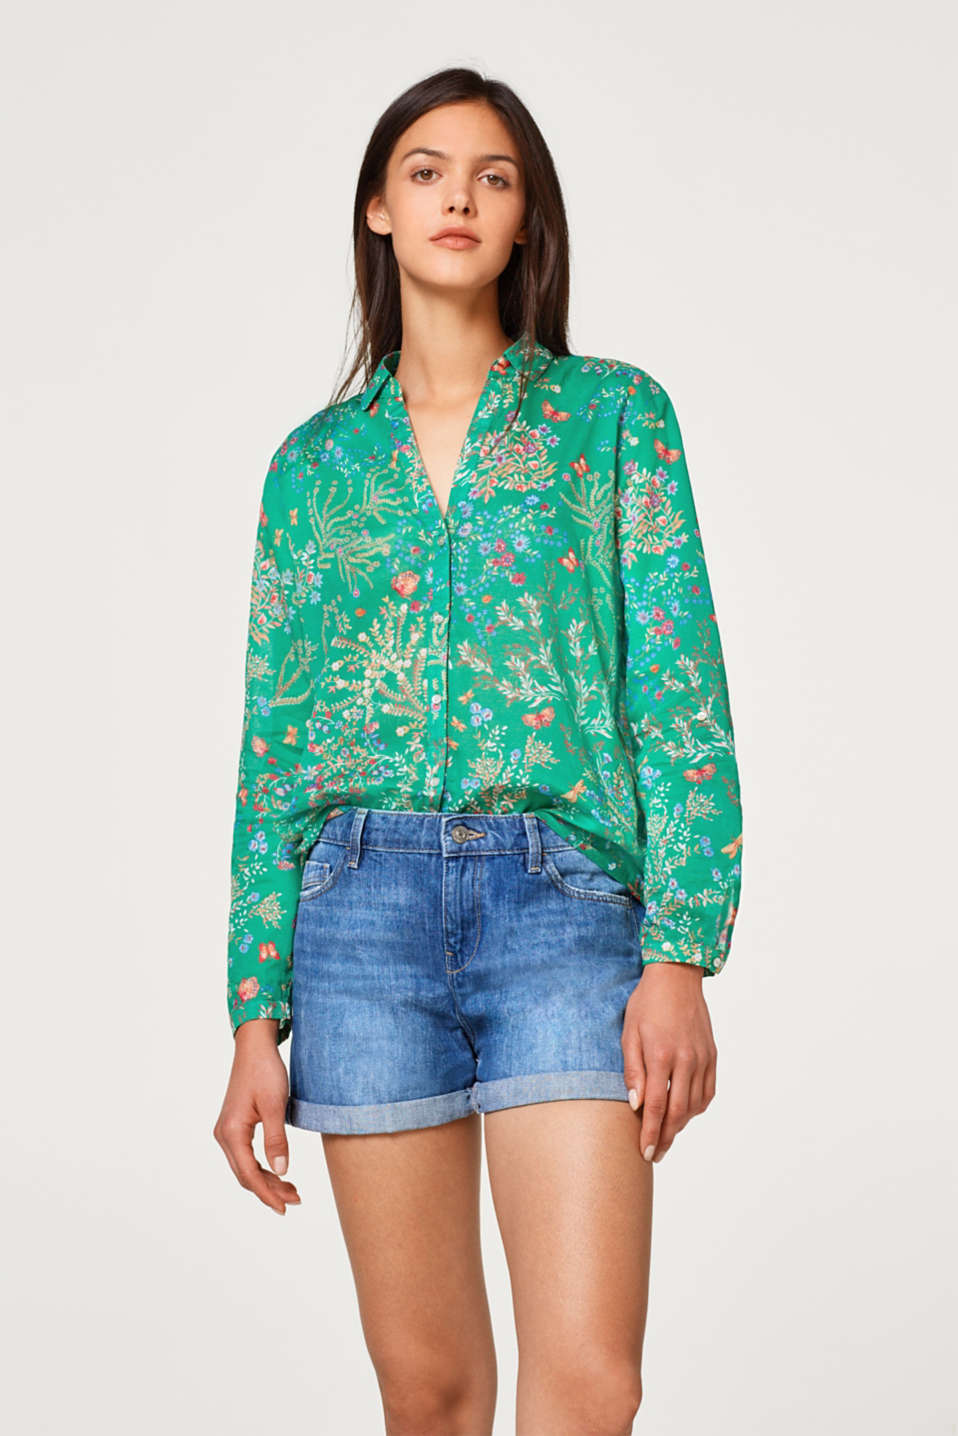 Esprit - Blouse with a floral print, 100% cotton